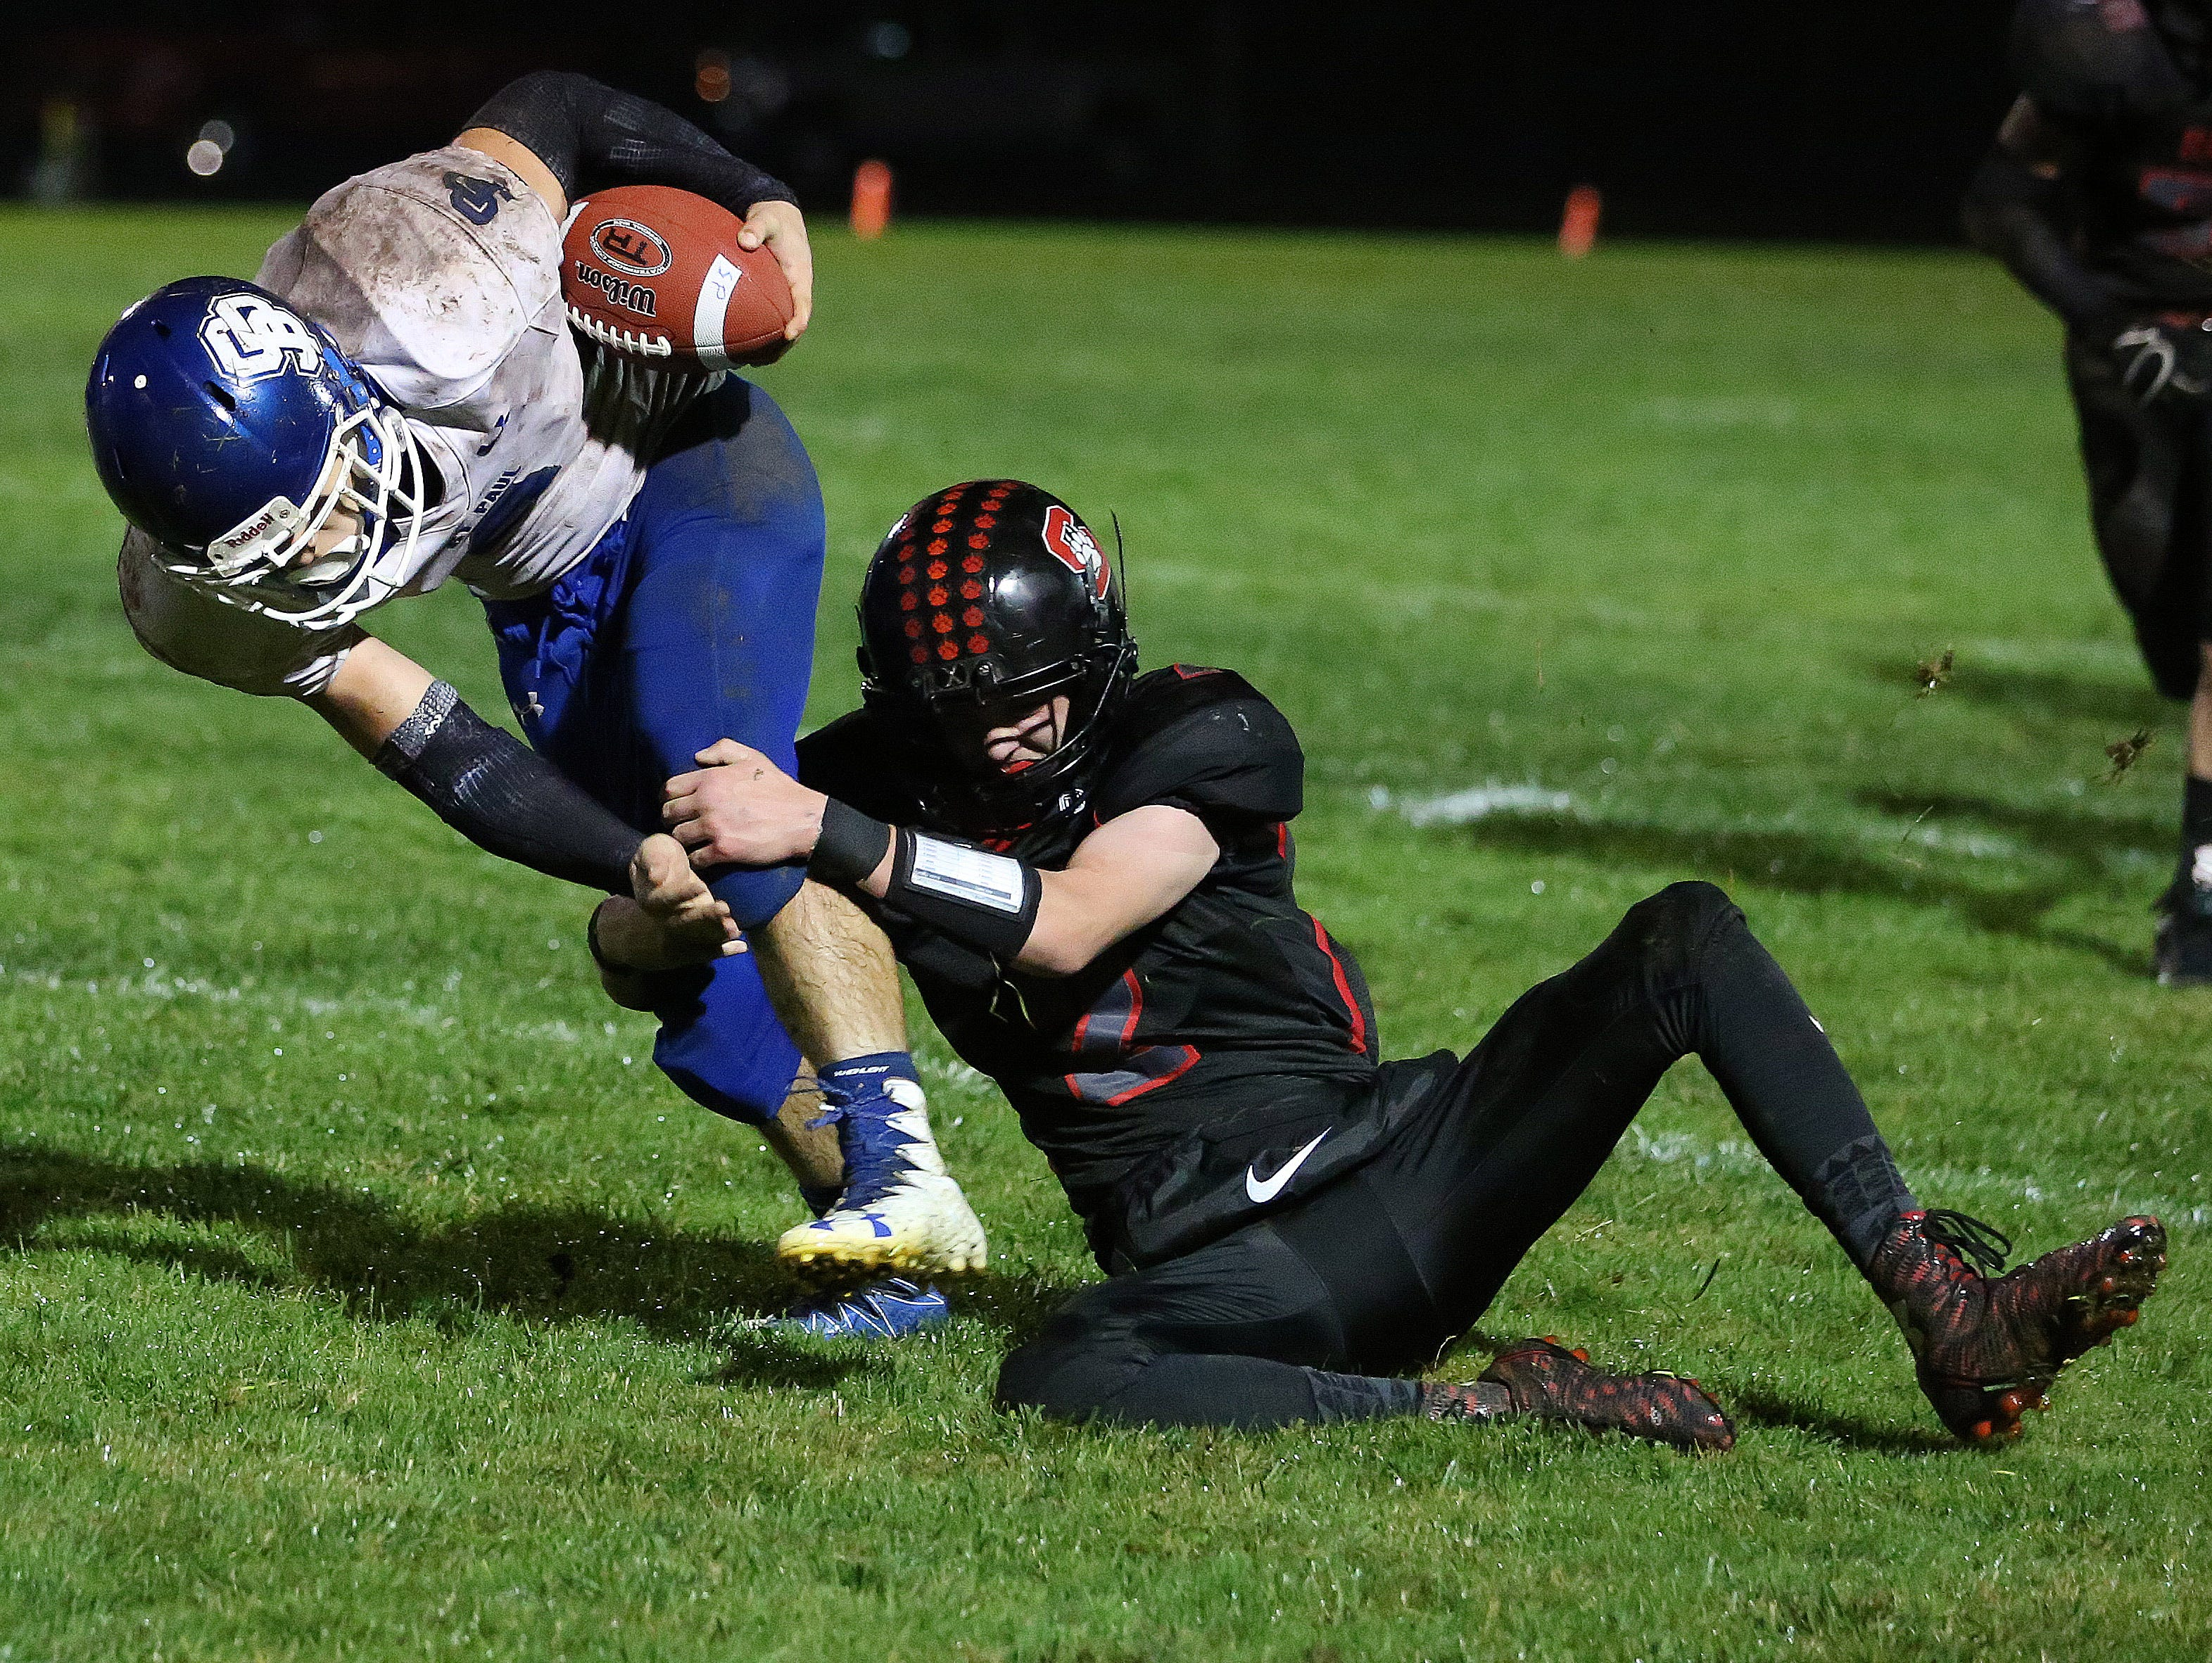 Santiam's Kole Amaral helps take down St. Paul's Fernando Dela Cerda in a Tri-River Conference game on Friday, Oct. 7, 2016, at Santiam High School in Mill City.